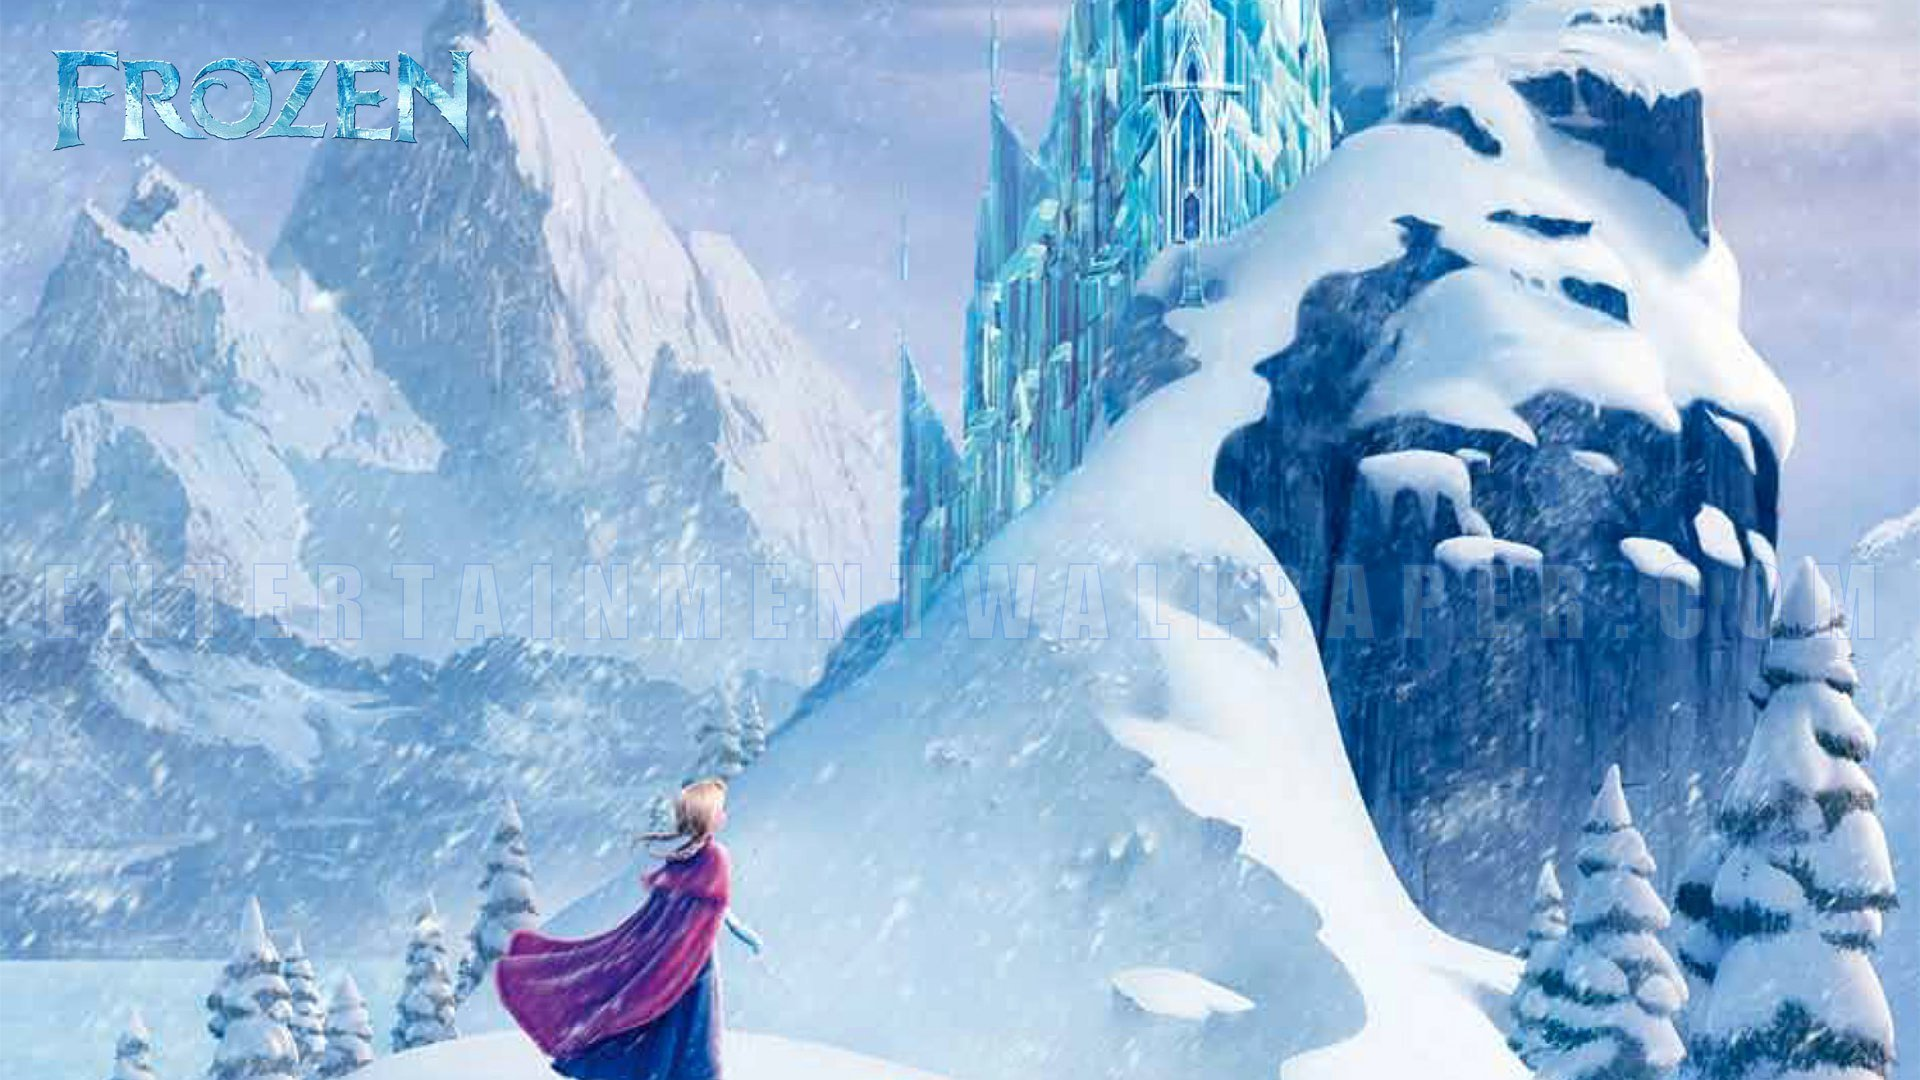 Disney frozen wallpaper for desktop wallpapersafari - Frozen cartoon wallpaper ...